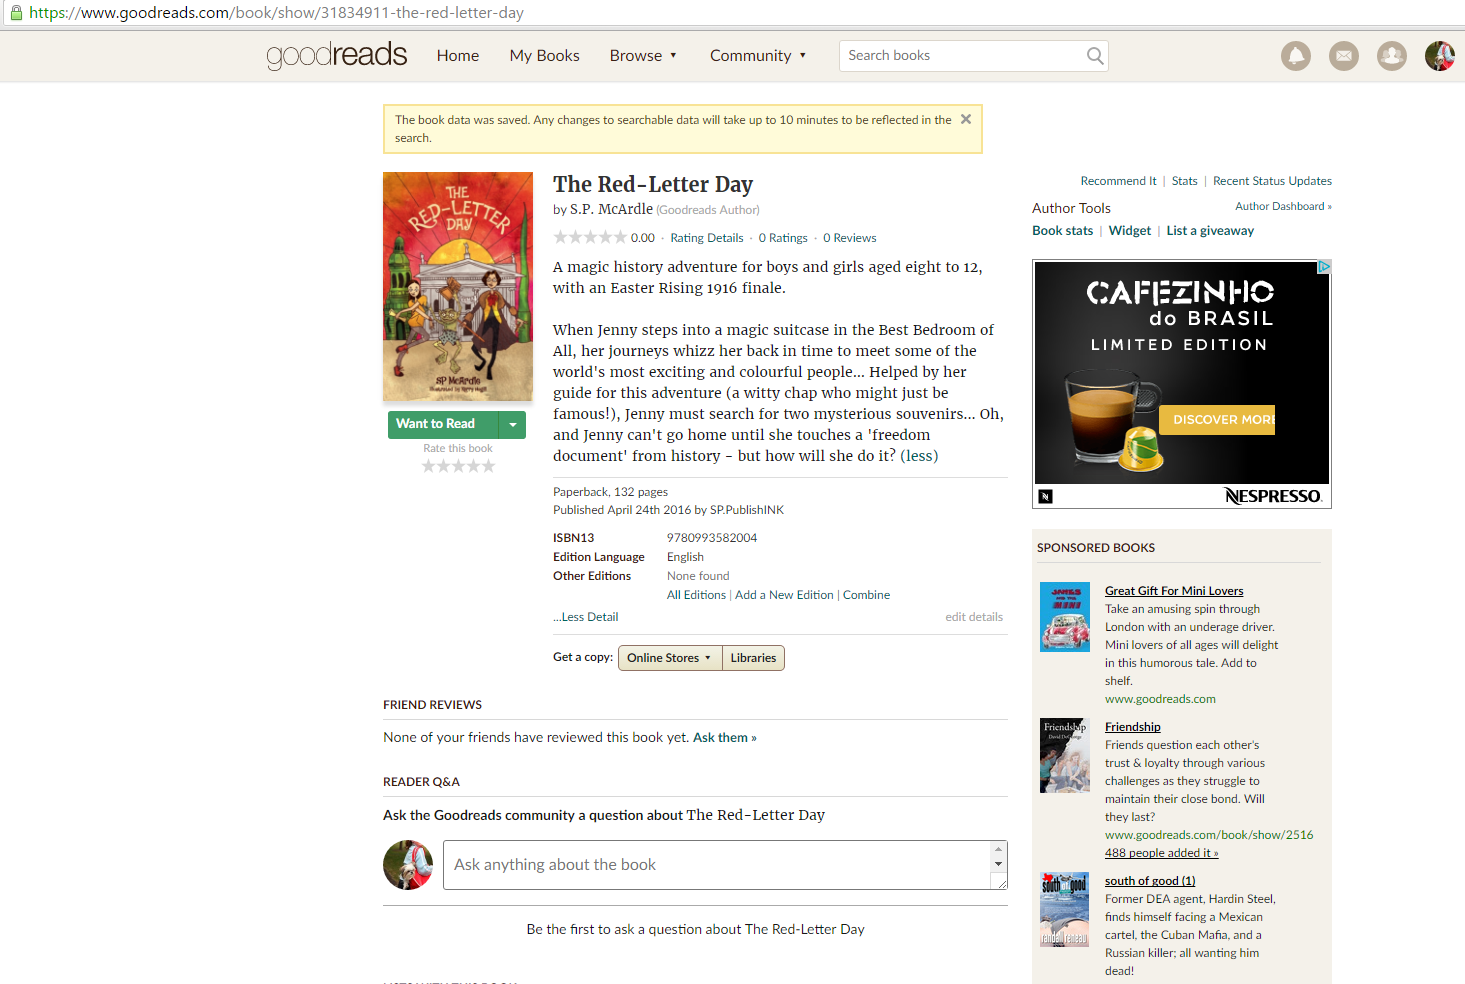 zz-goodreads-screenshot